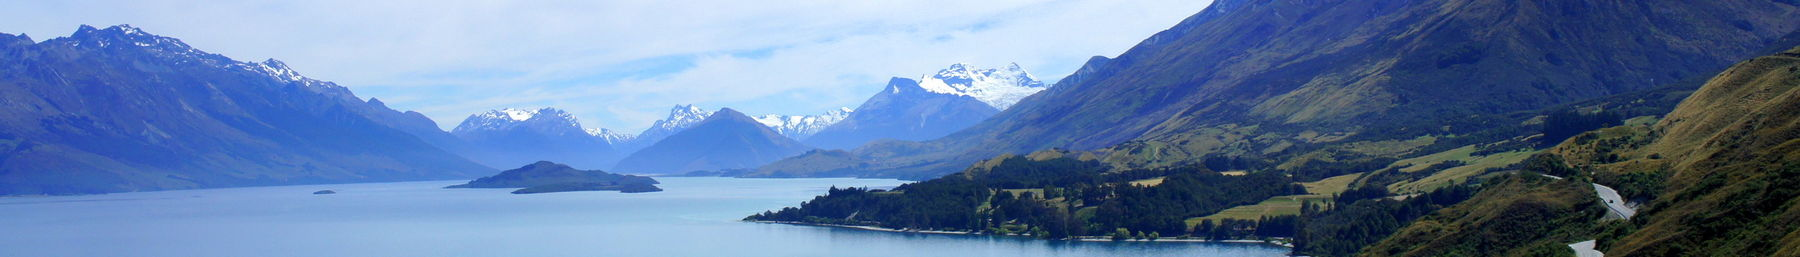 New Zealand banner Glenorchy.JPG